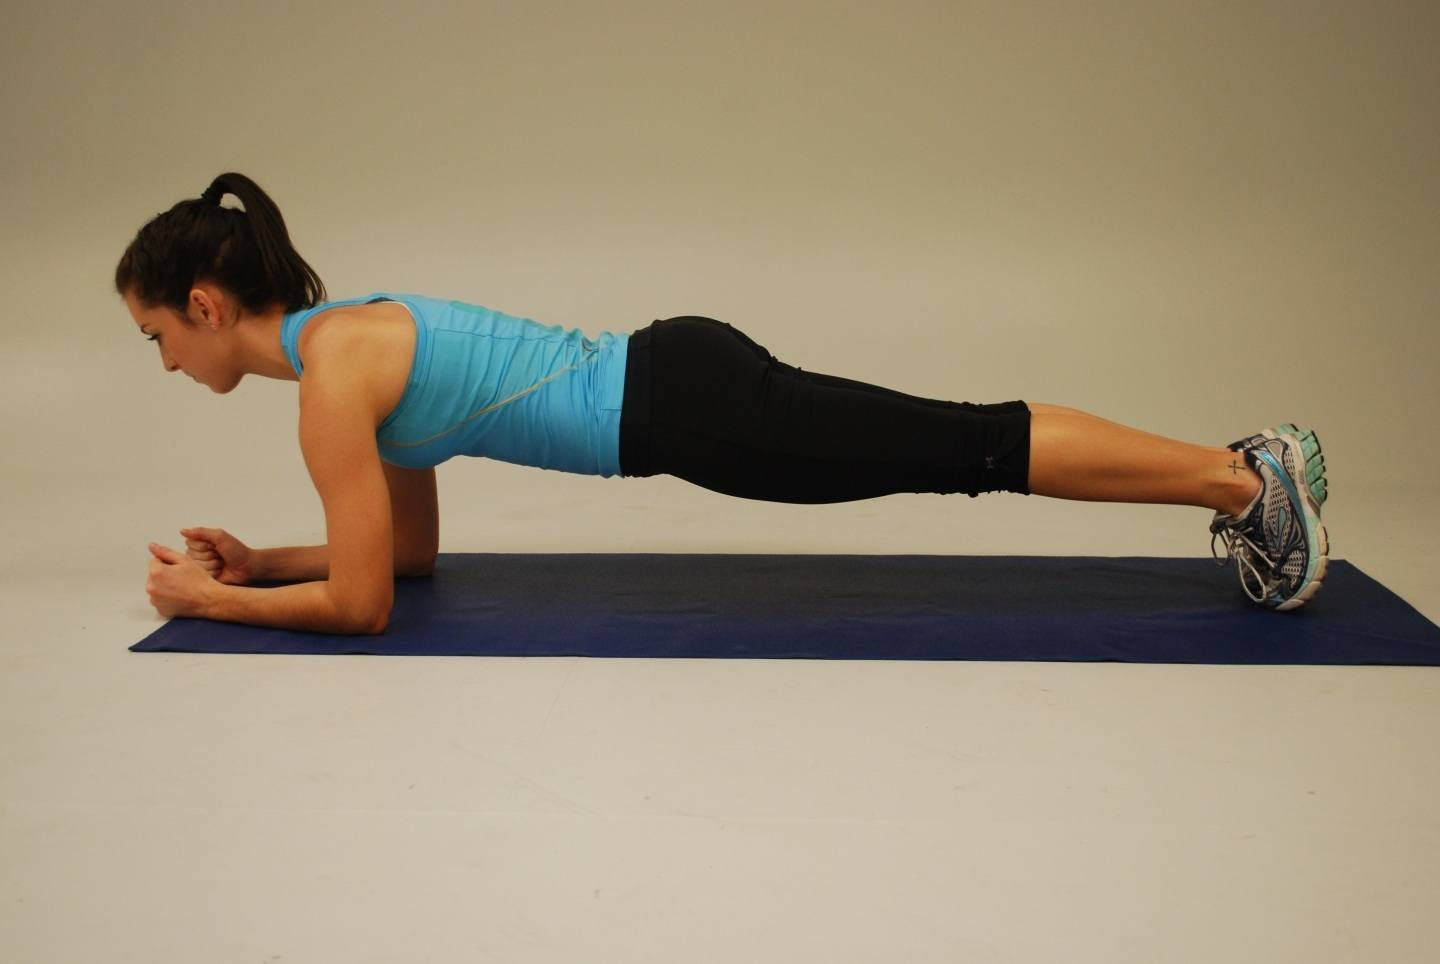 Plank works your core without the risk